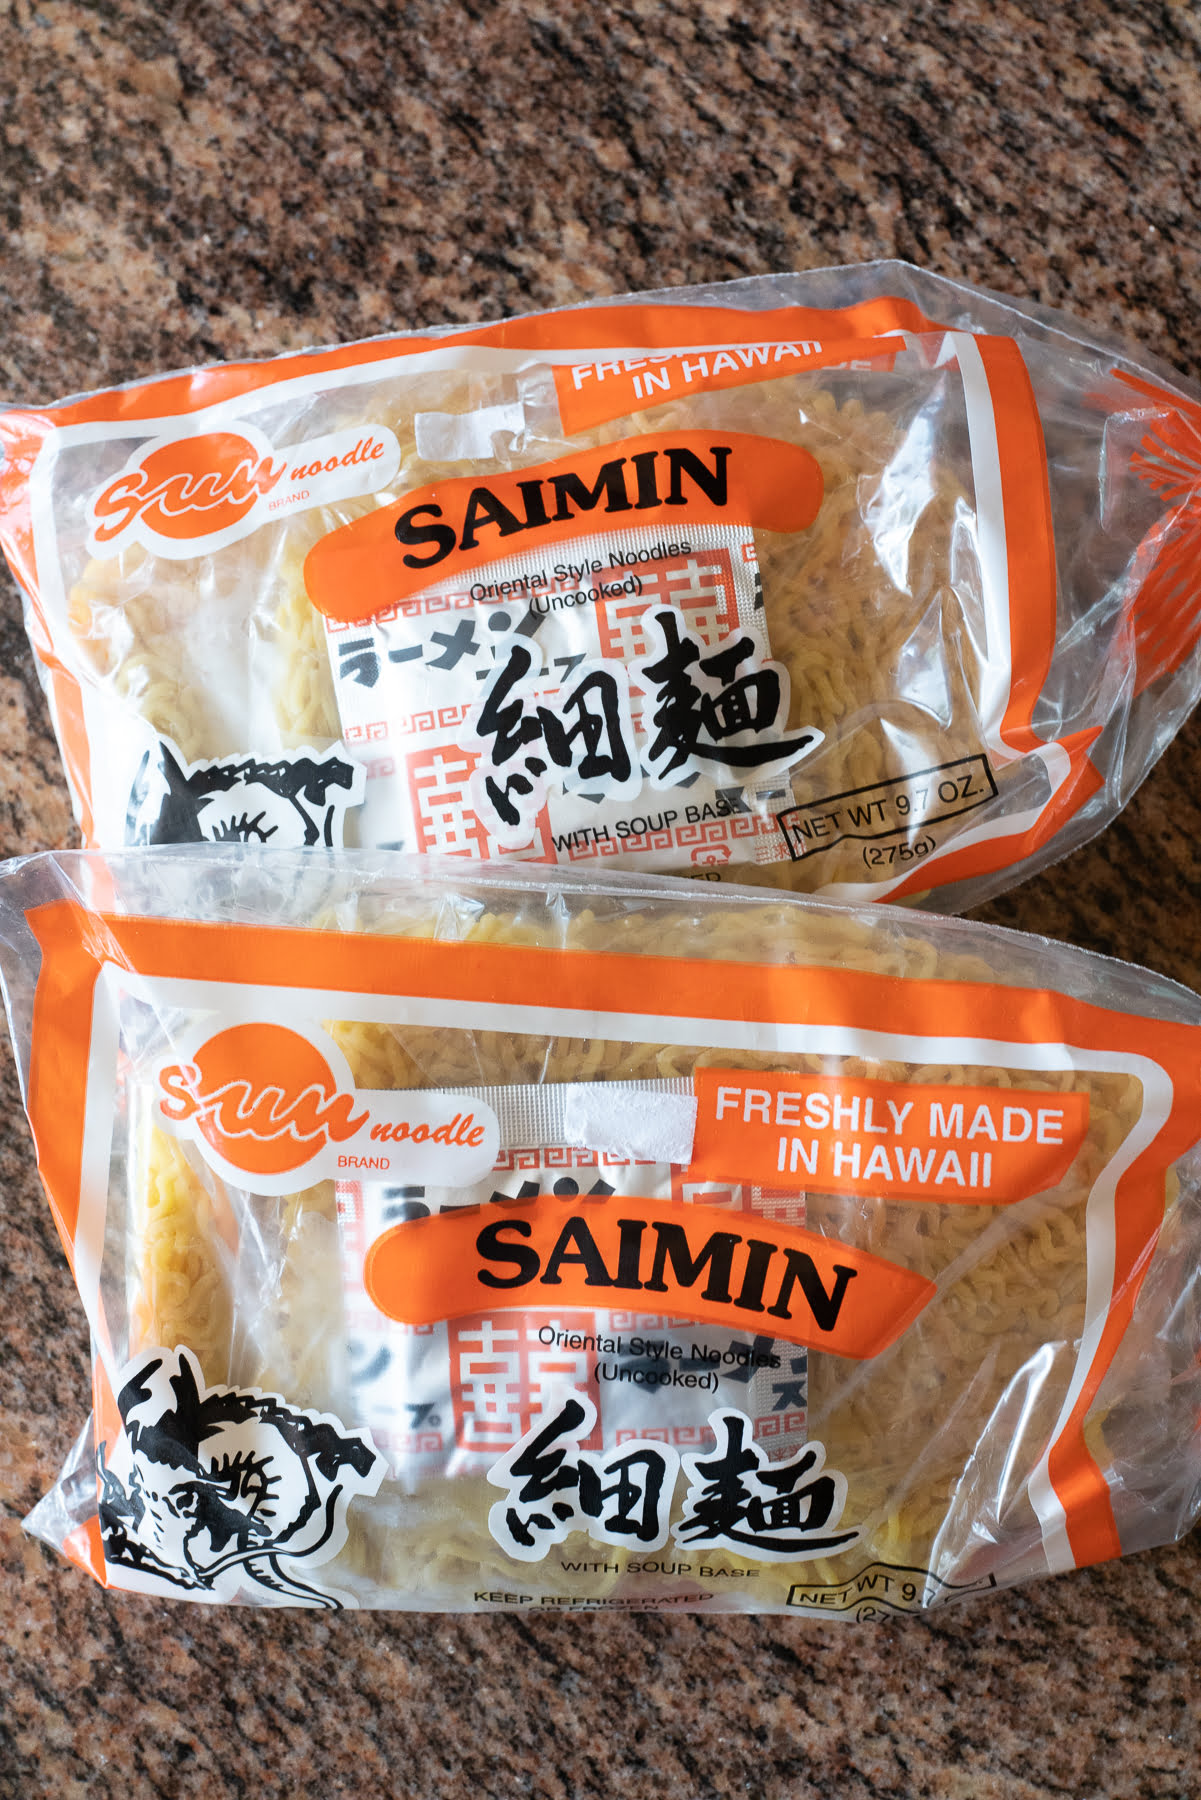 Packages of saimin noodles and seasoning powder from the supermarket.